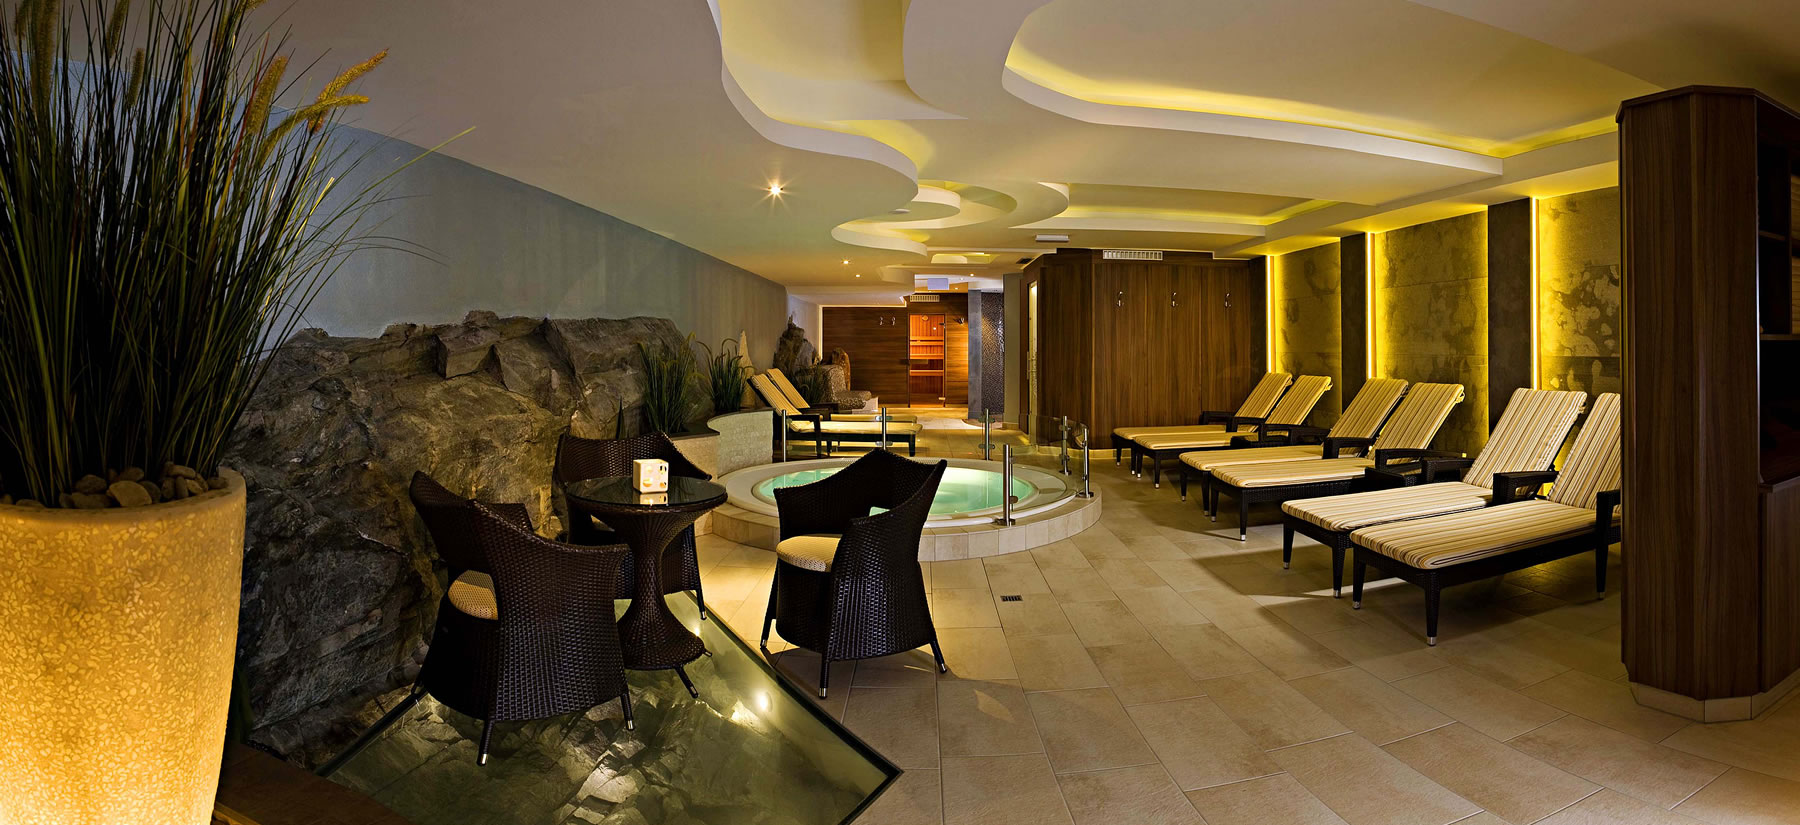 Wellness area at Hotel Madeleine in Obergurgl